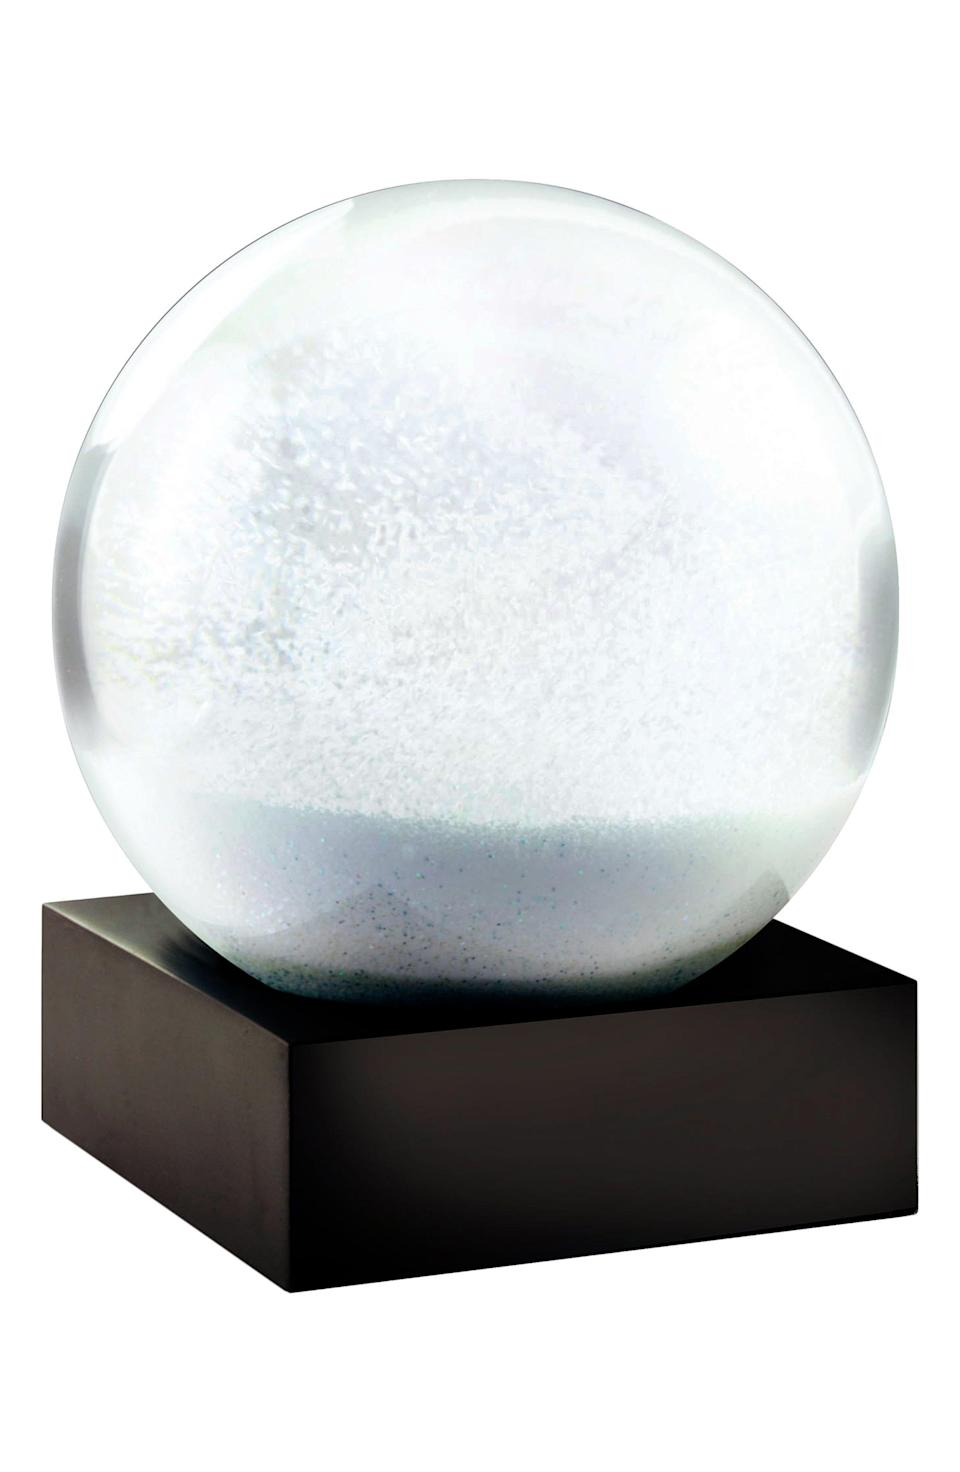 "<p><strong>COOLSNOWGLOBES</strong></p><p>nordstrom.com</p><p><strong>$27.00</strong></p><p><a href=""https://go.redirectingat.com?id=74968X1596630&url=https%3A%2F%2Fwww.nordstrom.com%2Fs%2Fcoolsnowglobes-snowball-globe%2F5793147&sref=https%3A%2F%2Fwww.redbookmag.com%2Fhome%2Fg35091289%2Fcoffee-table-decor%2F"" rel=""nofollow noopener"" target=""_blank"" data-ylk=""slk:SHOP IT"" class=""link rapid-noclick-resp"">SHOP IT</a></p><p>You probably had snow globes in your room when you were a kid. This one is a thoroughly modern update to the classic holiday piece. </p>"